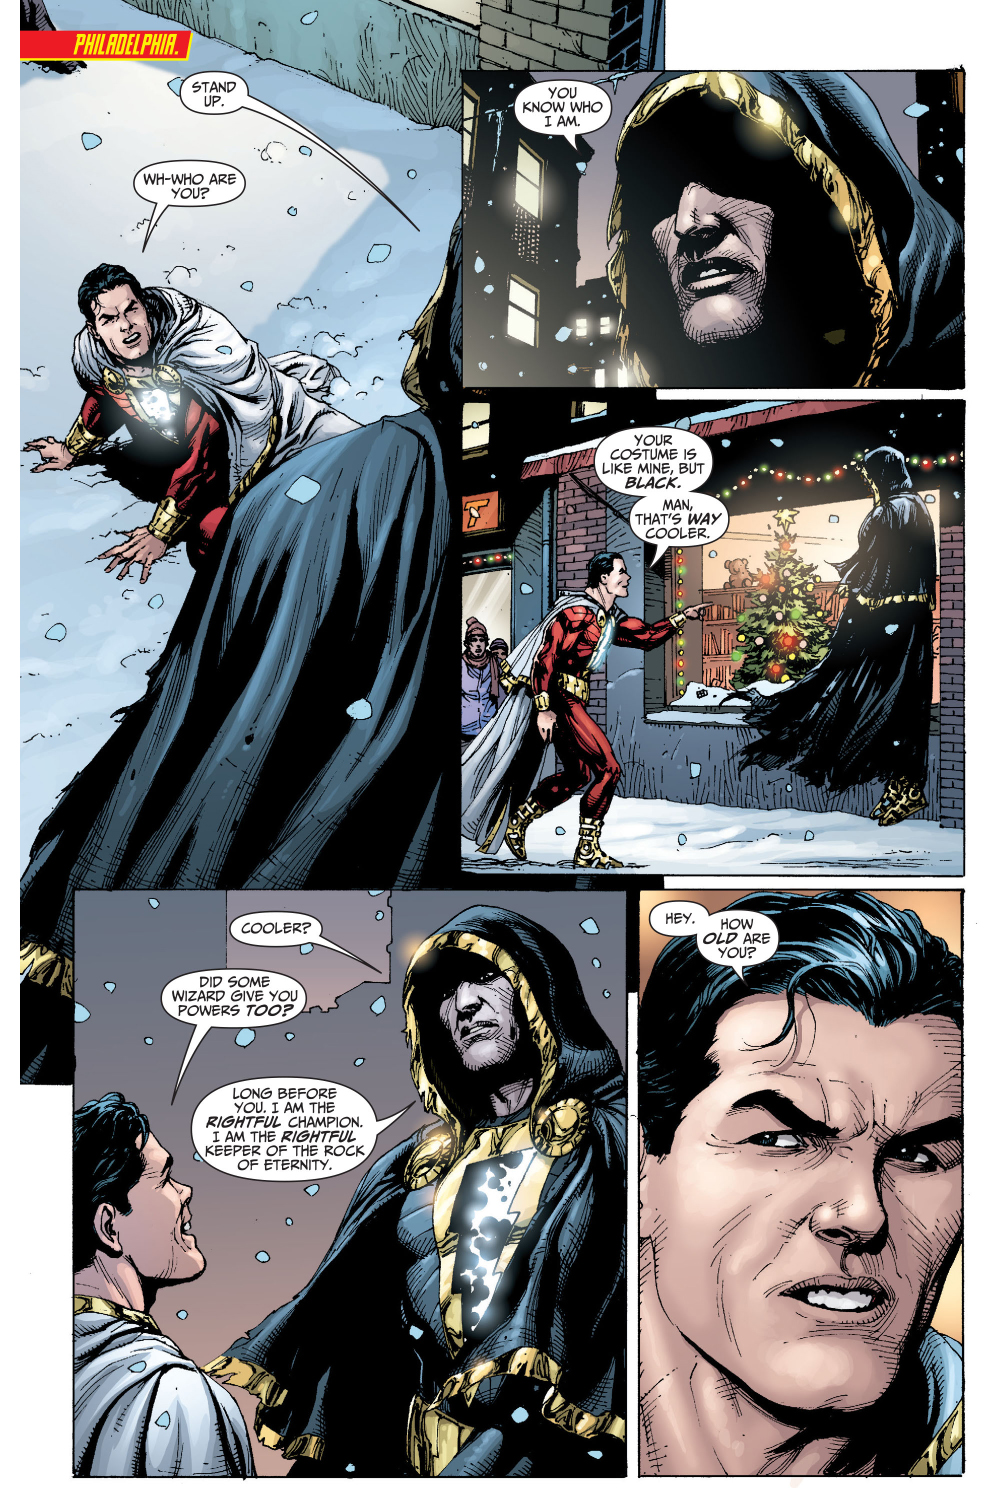 Black adam injustice new 52 images for 52 time table